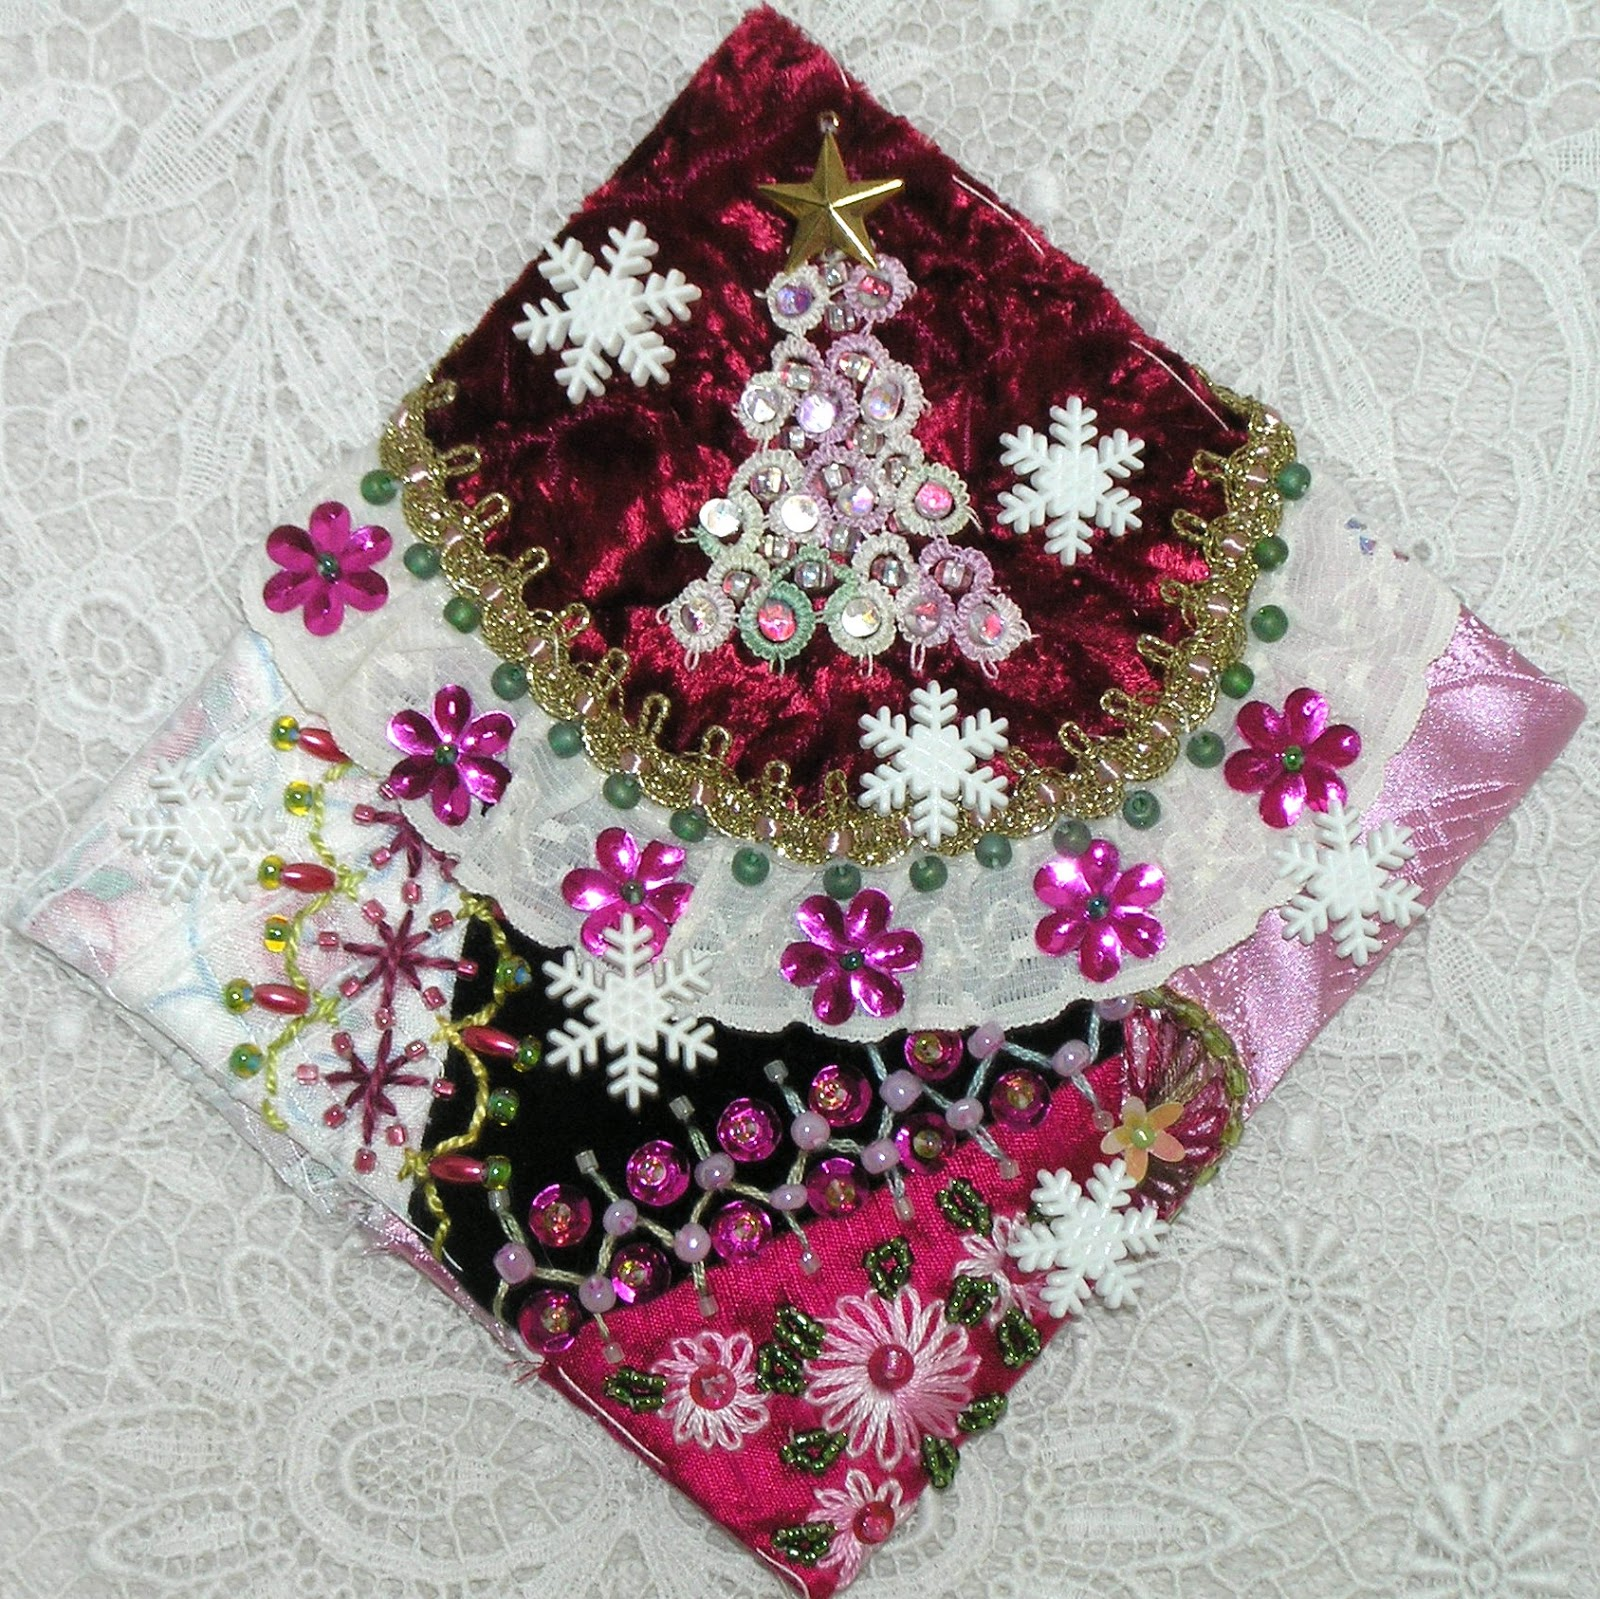 Quilting Christmas Ornaments Patterns : Kitty And Me Designs: Crazy Quilt Blocks for Christmas Ornaments